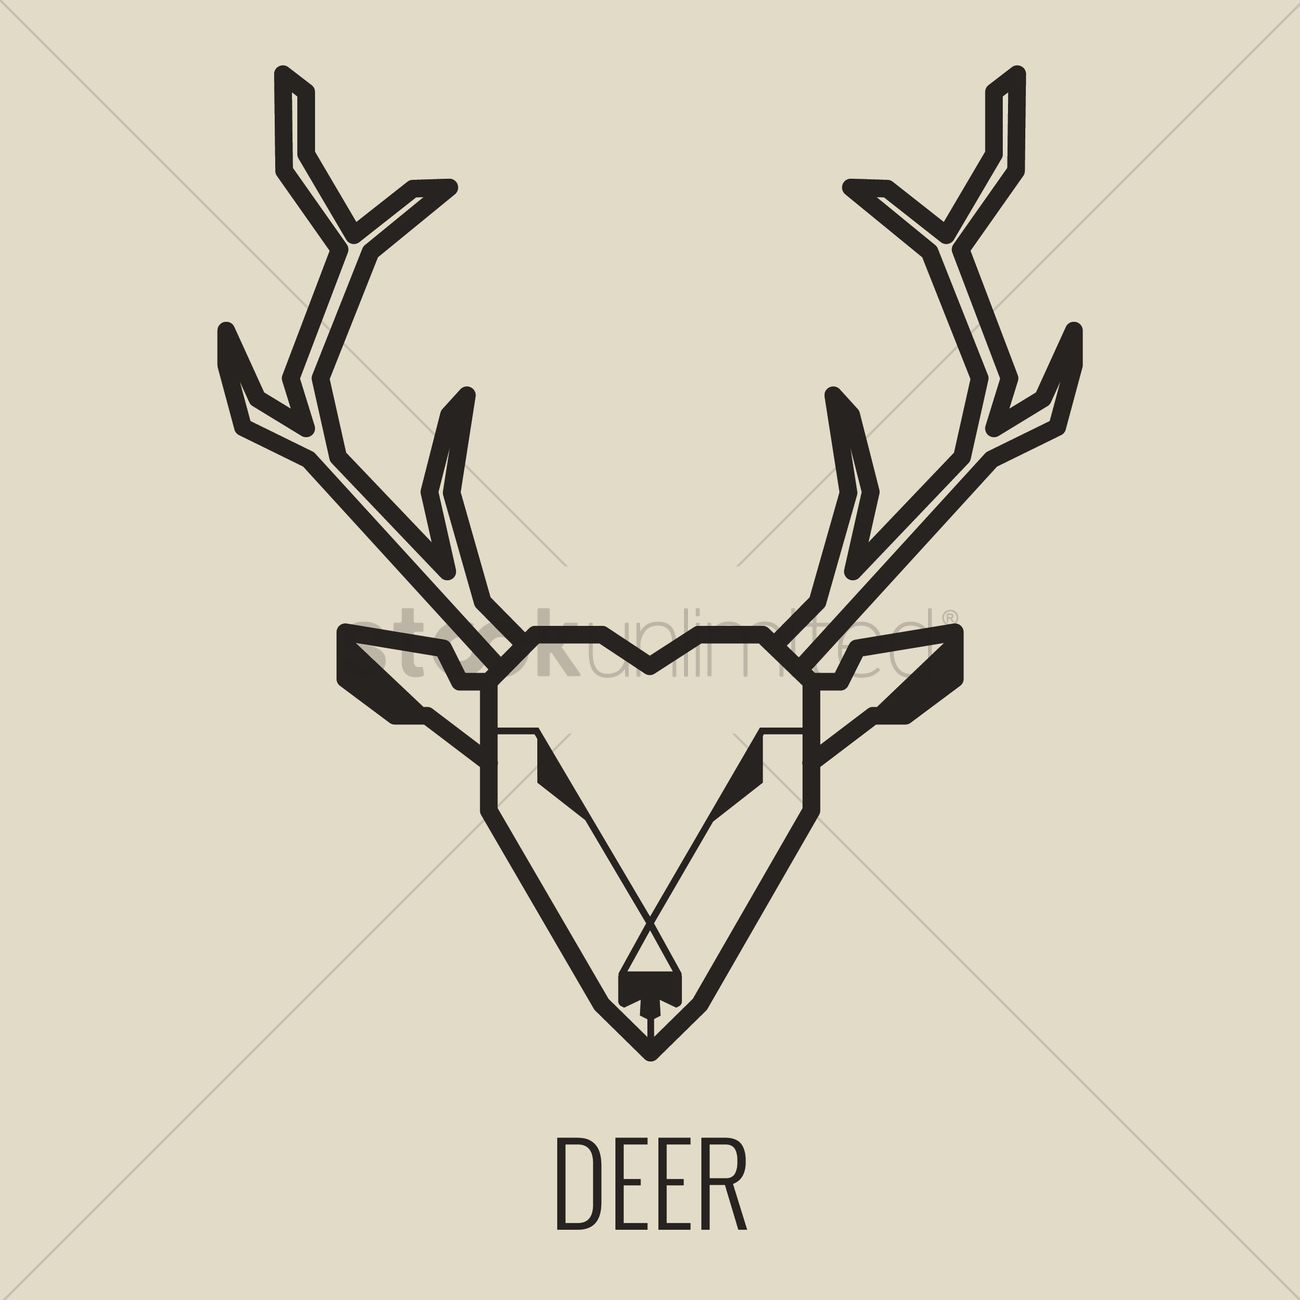 1300x1300 Deer Vector Image